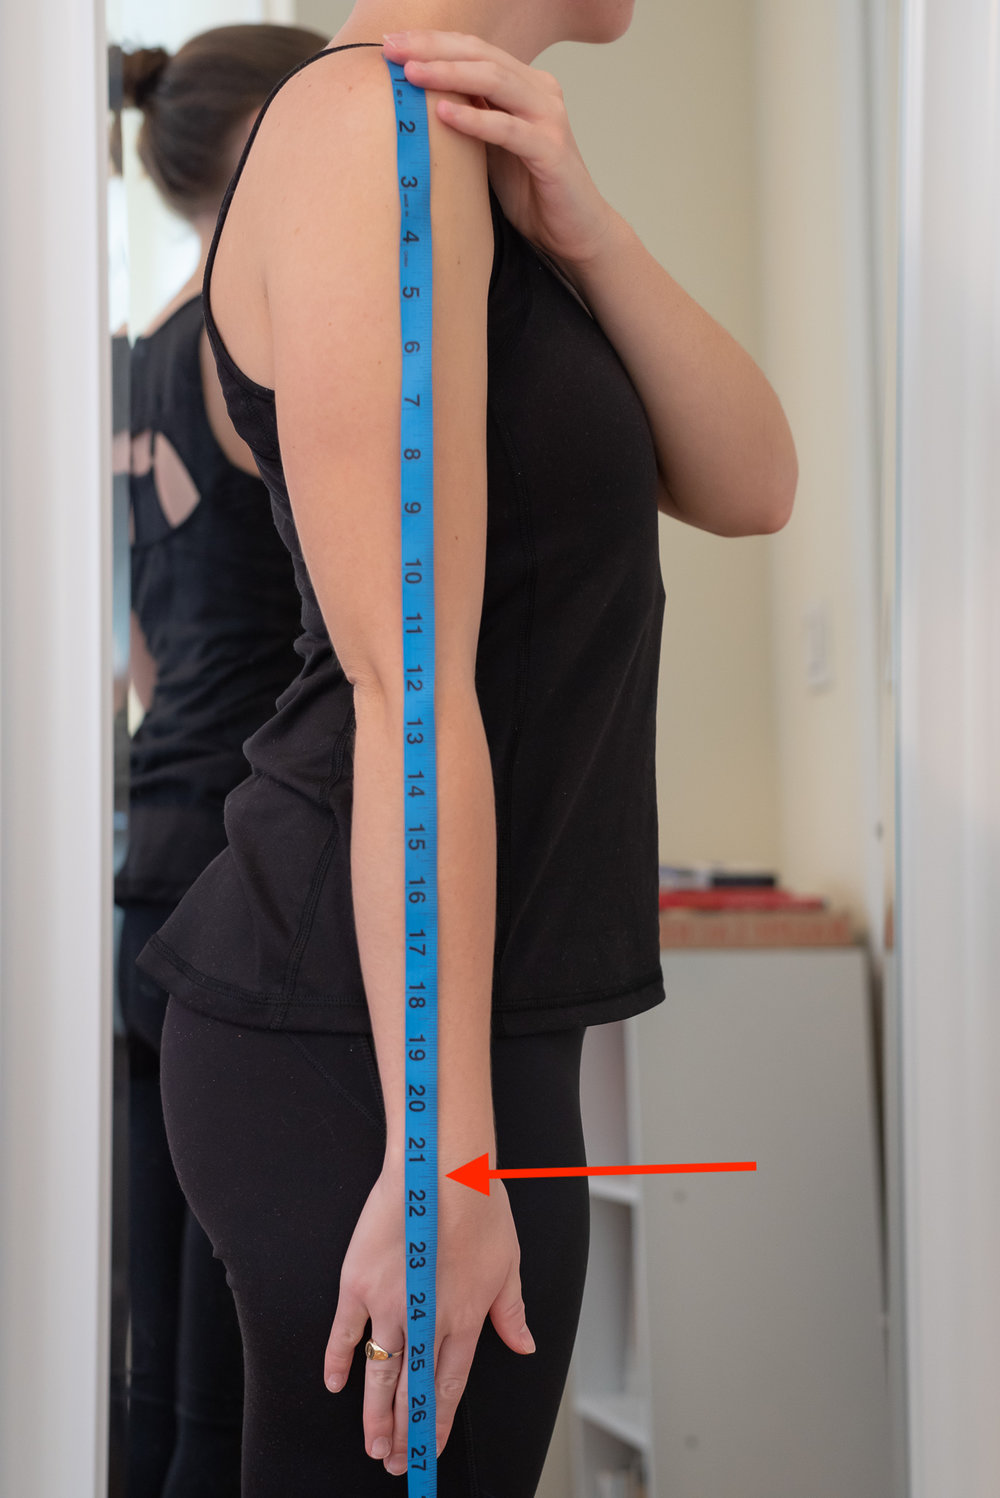 How to take your arm length or sleeve length measurement